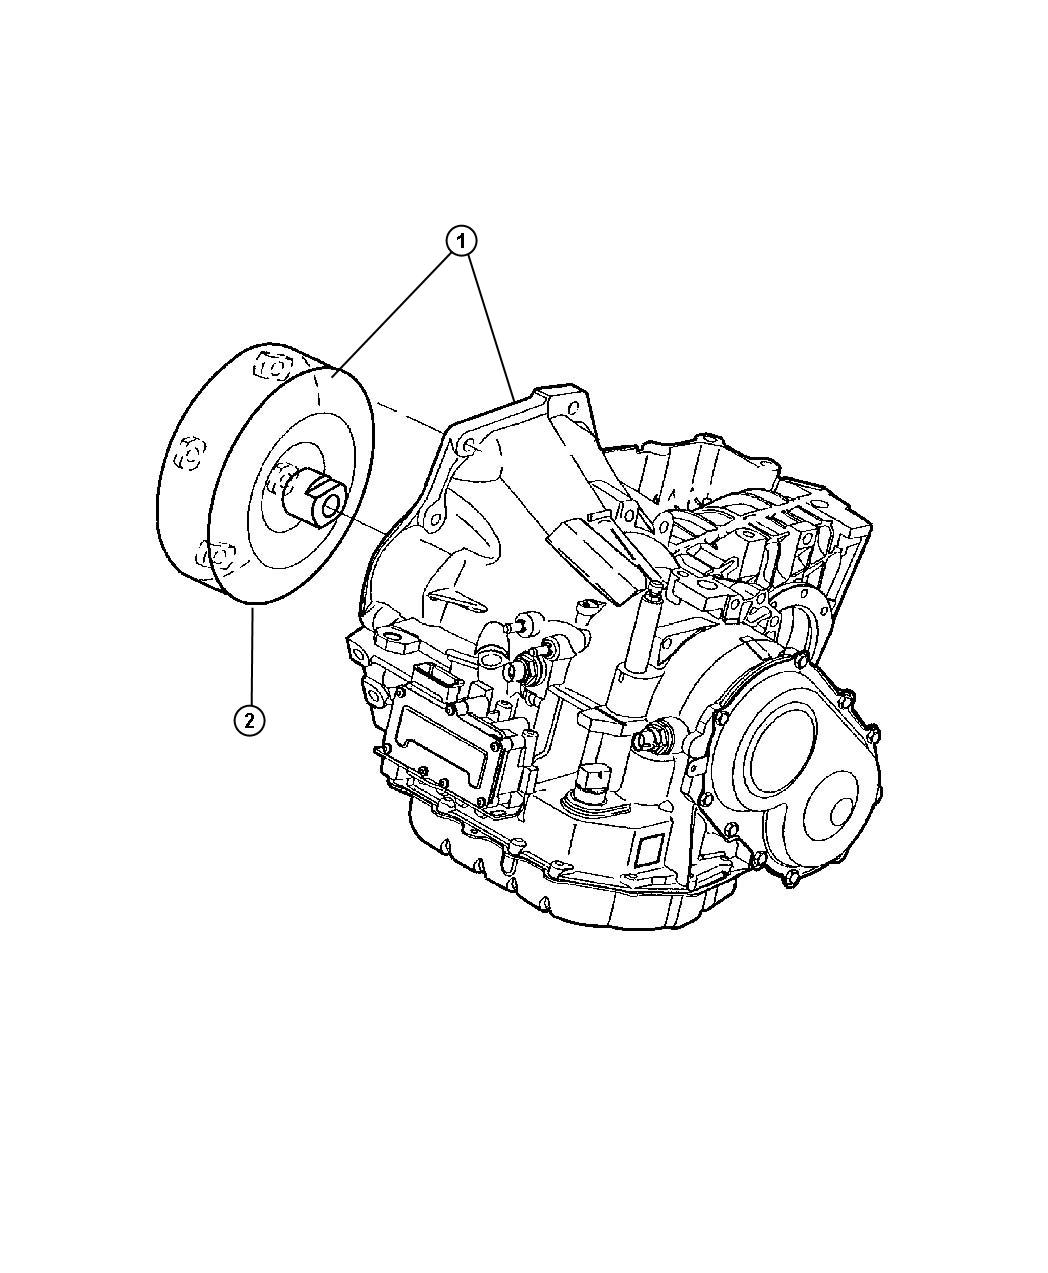 2007 Chrysler Pacifica Transaxle package, transmission